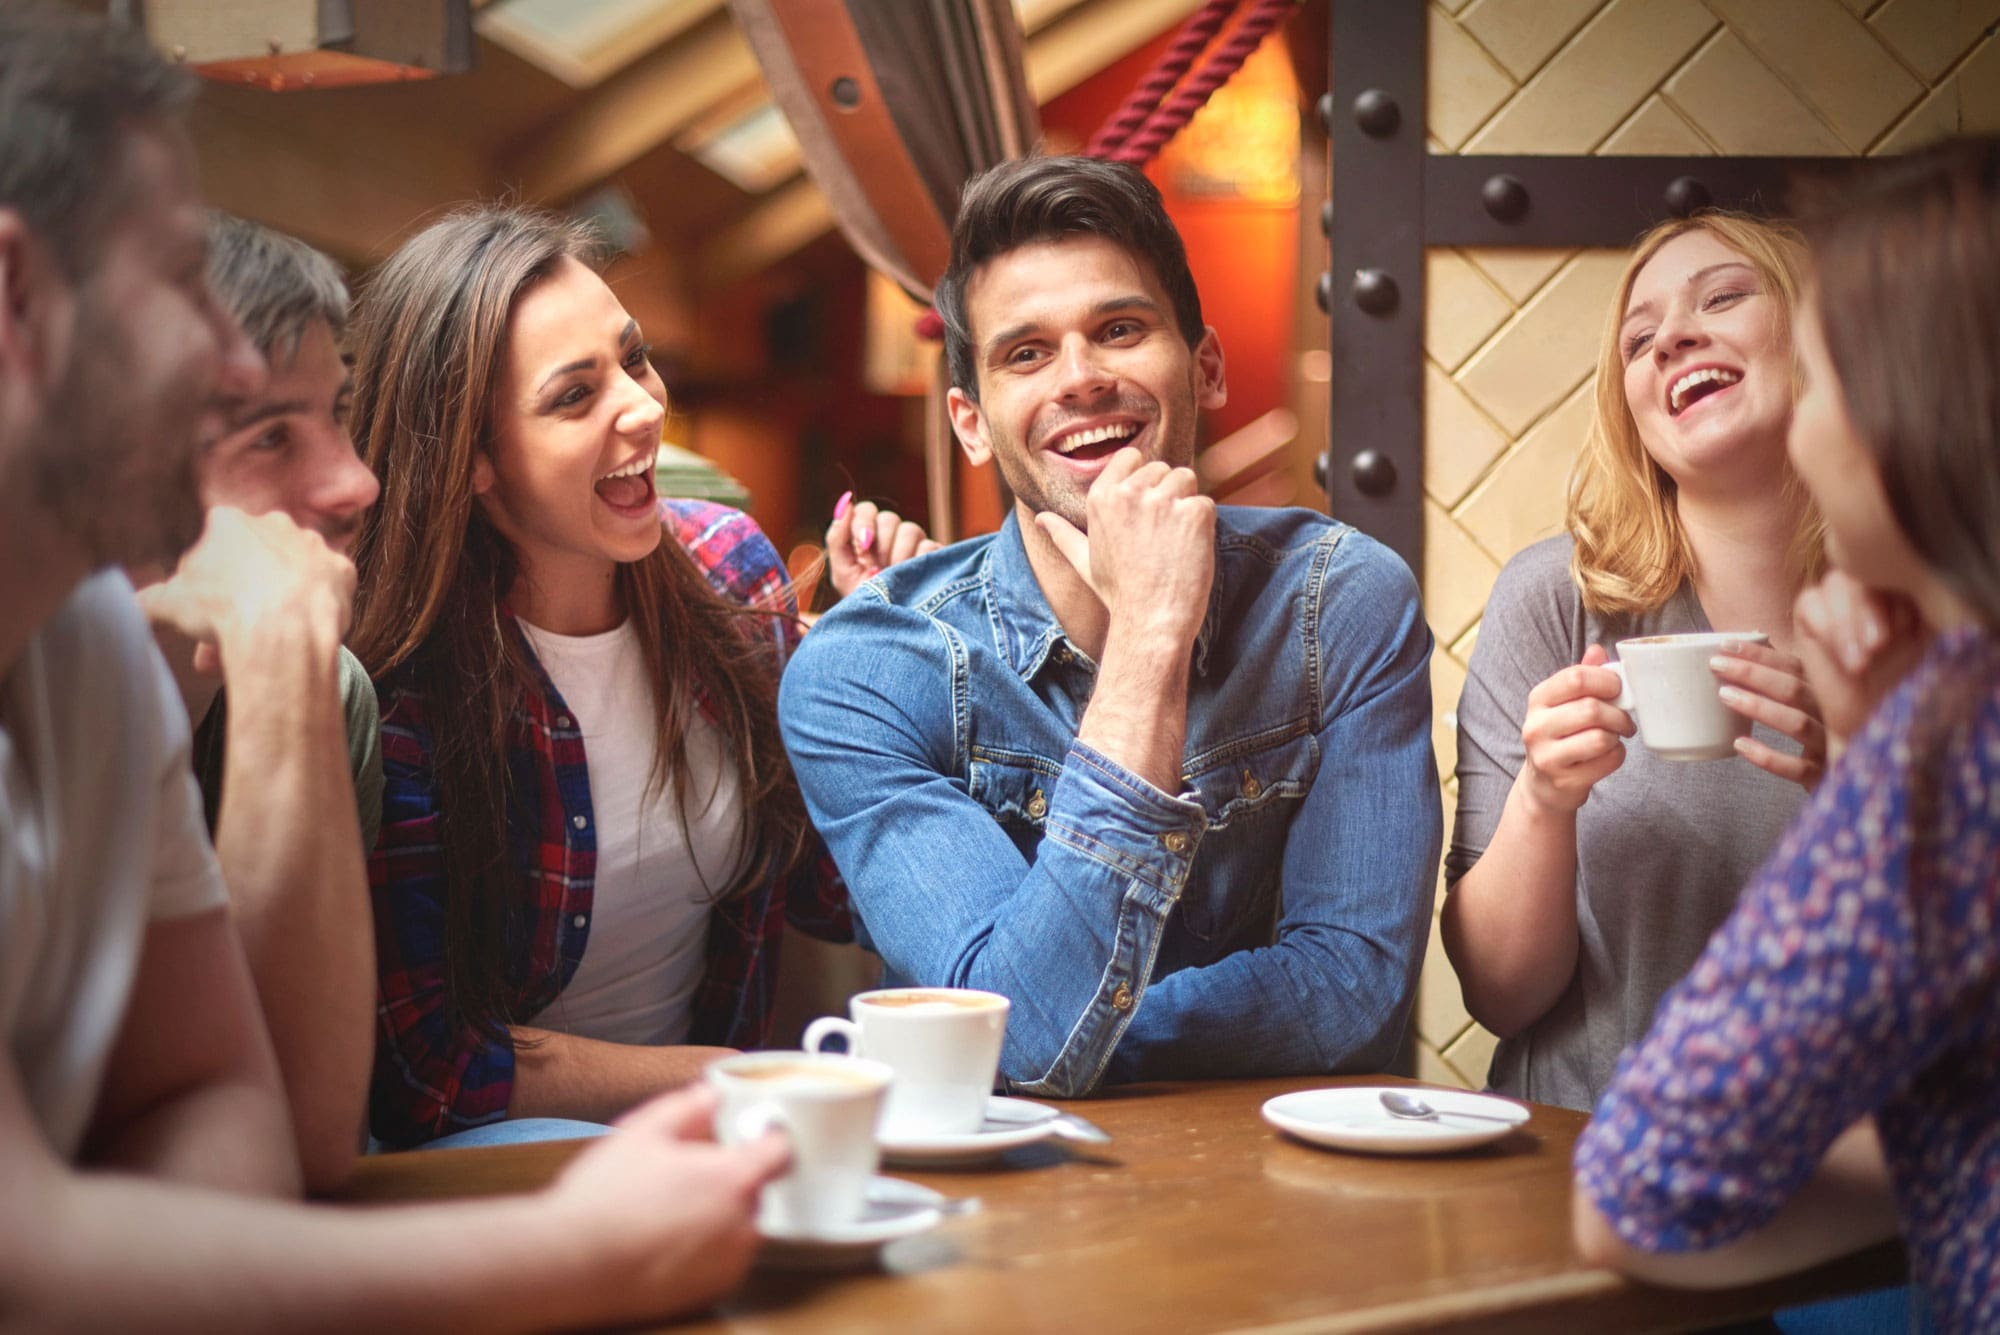 A group of friends laughs while talking at a bar